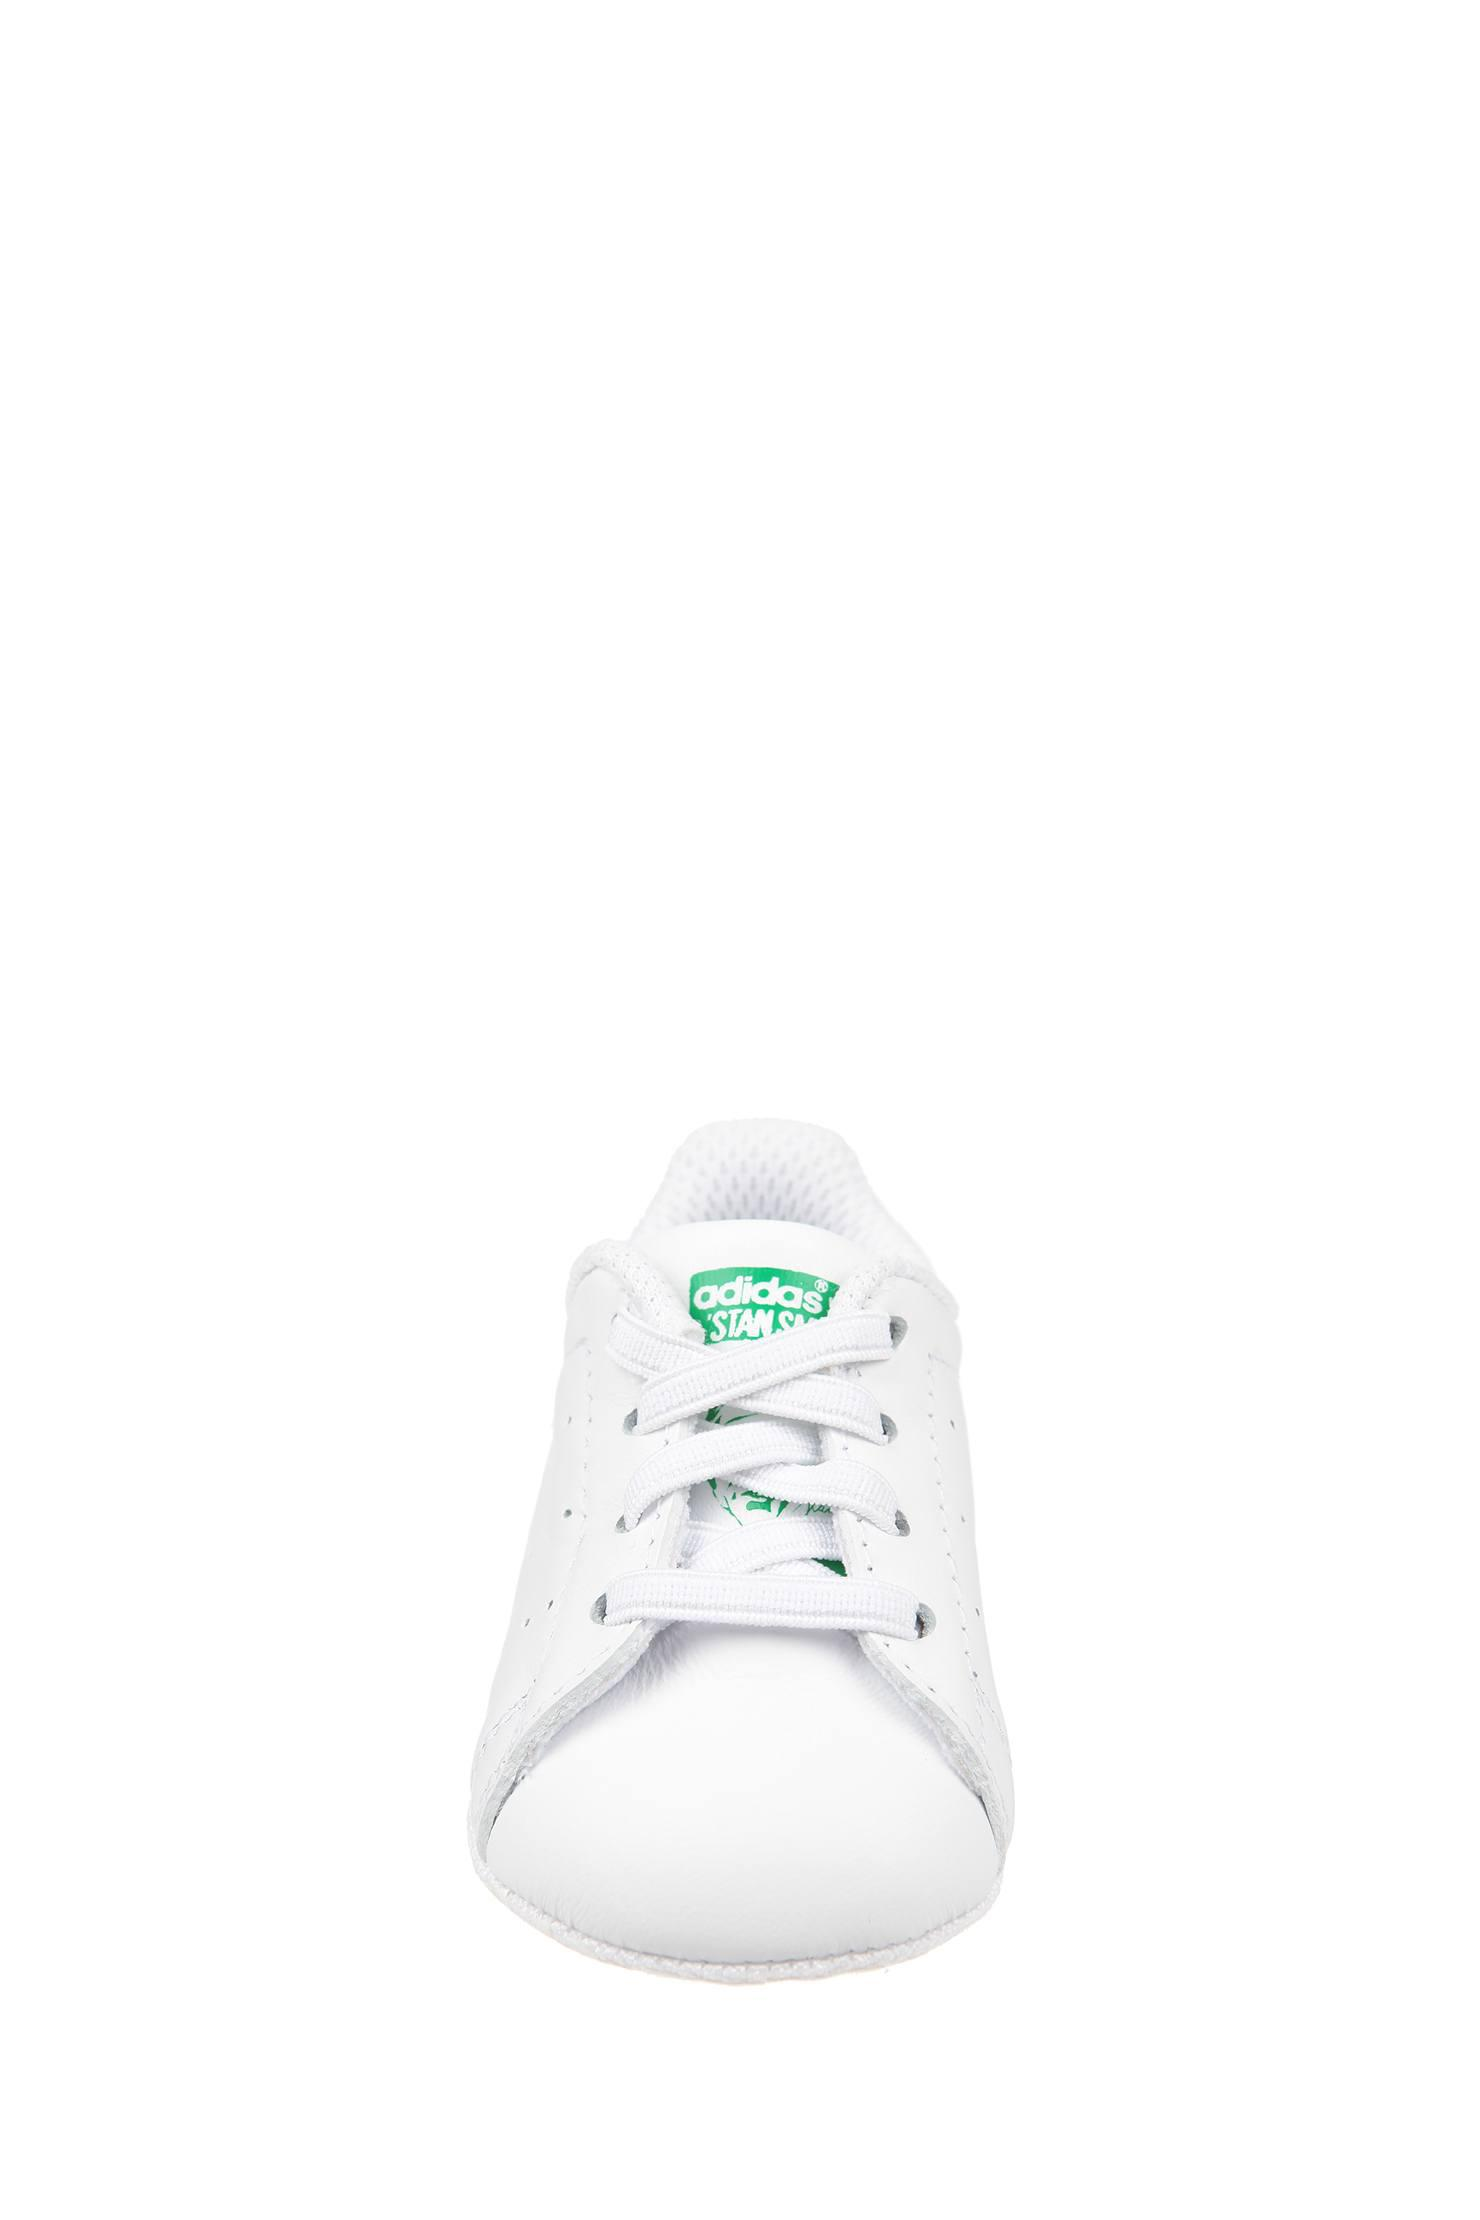 lyst adidas originals boy shoe slipper in white for men 1960s Shoes gallery